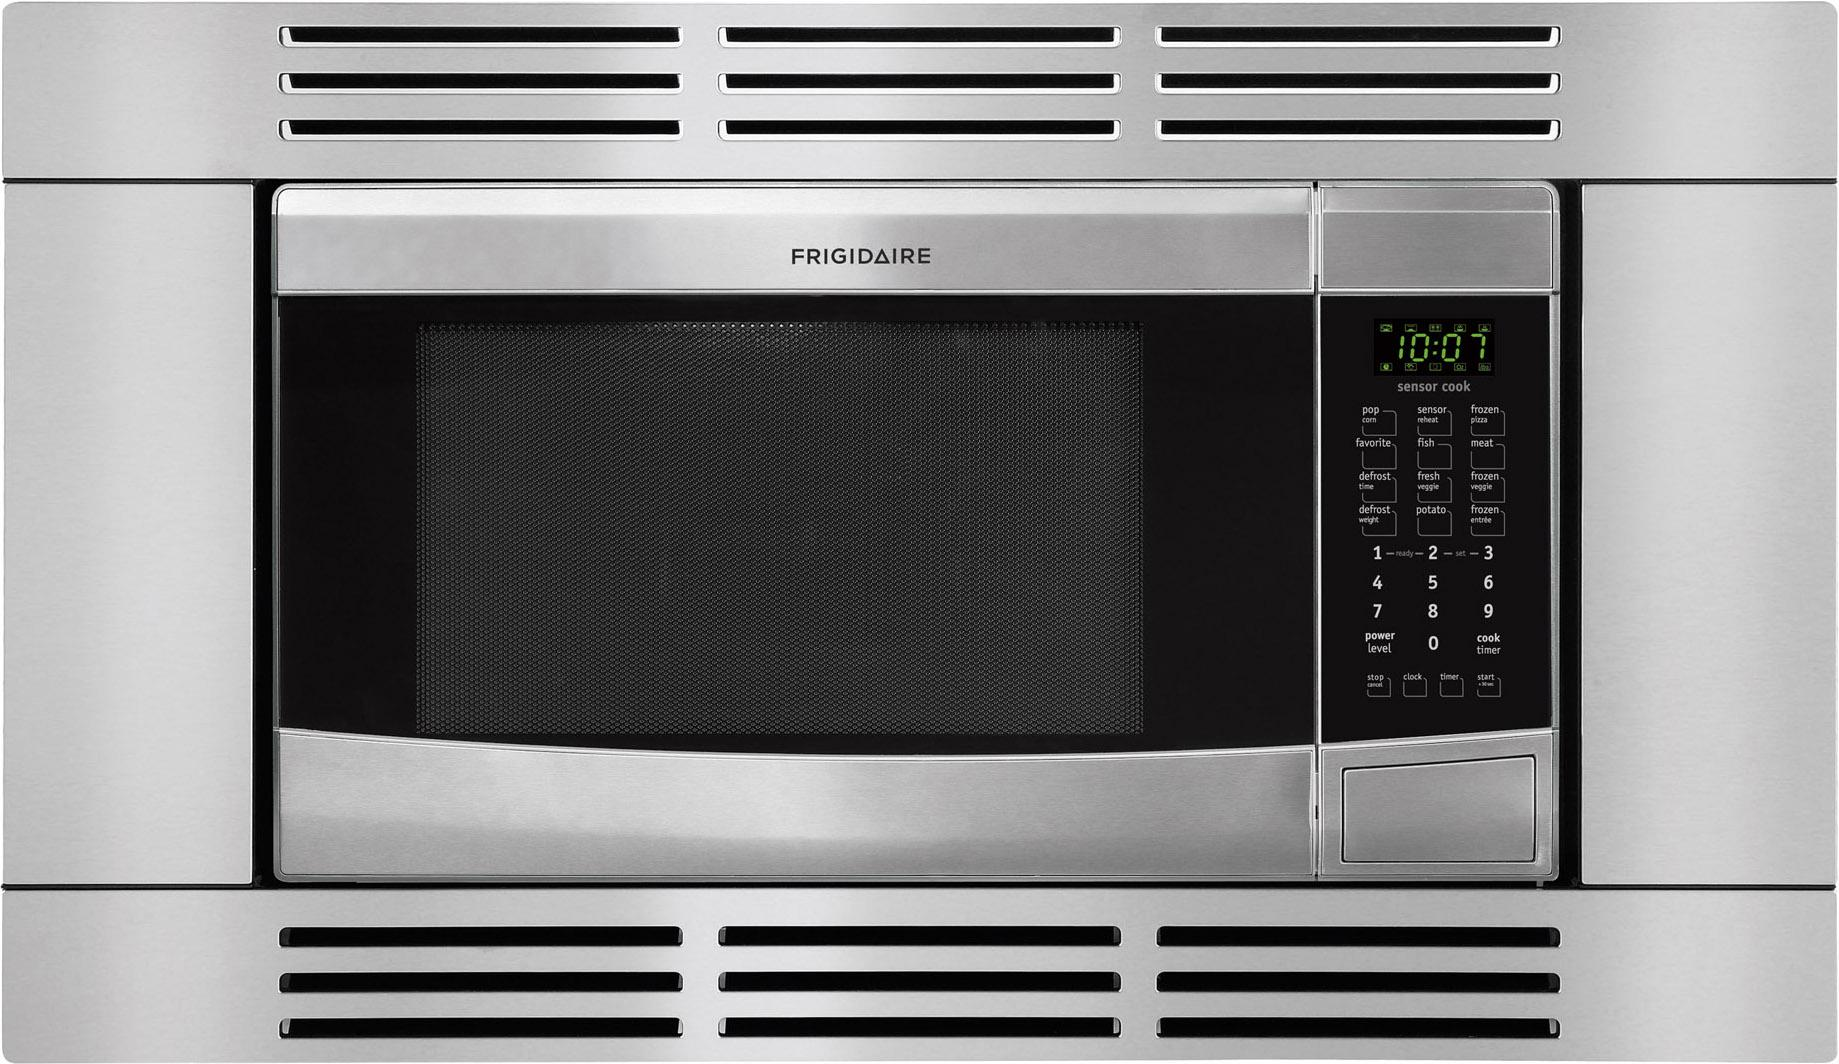 Frigidaire Microwaves 1.6 Cu. Ft. Built-In Microwave - Item Number: FFMO1611LS